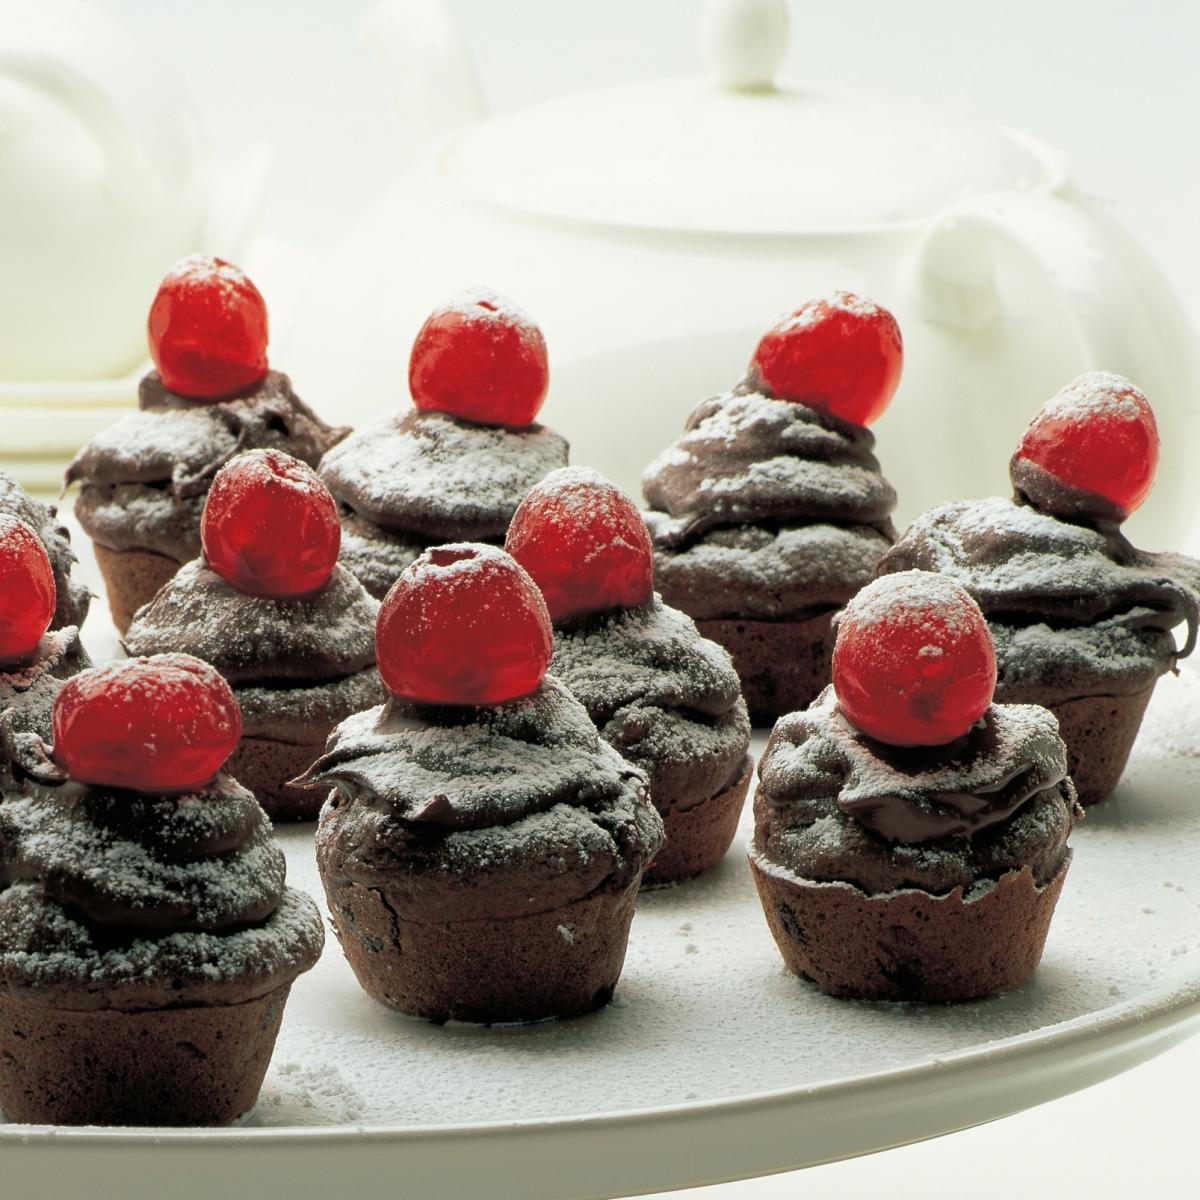 Chocolate chocolate drop mini muffins with red noses